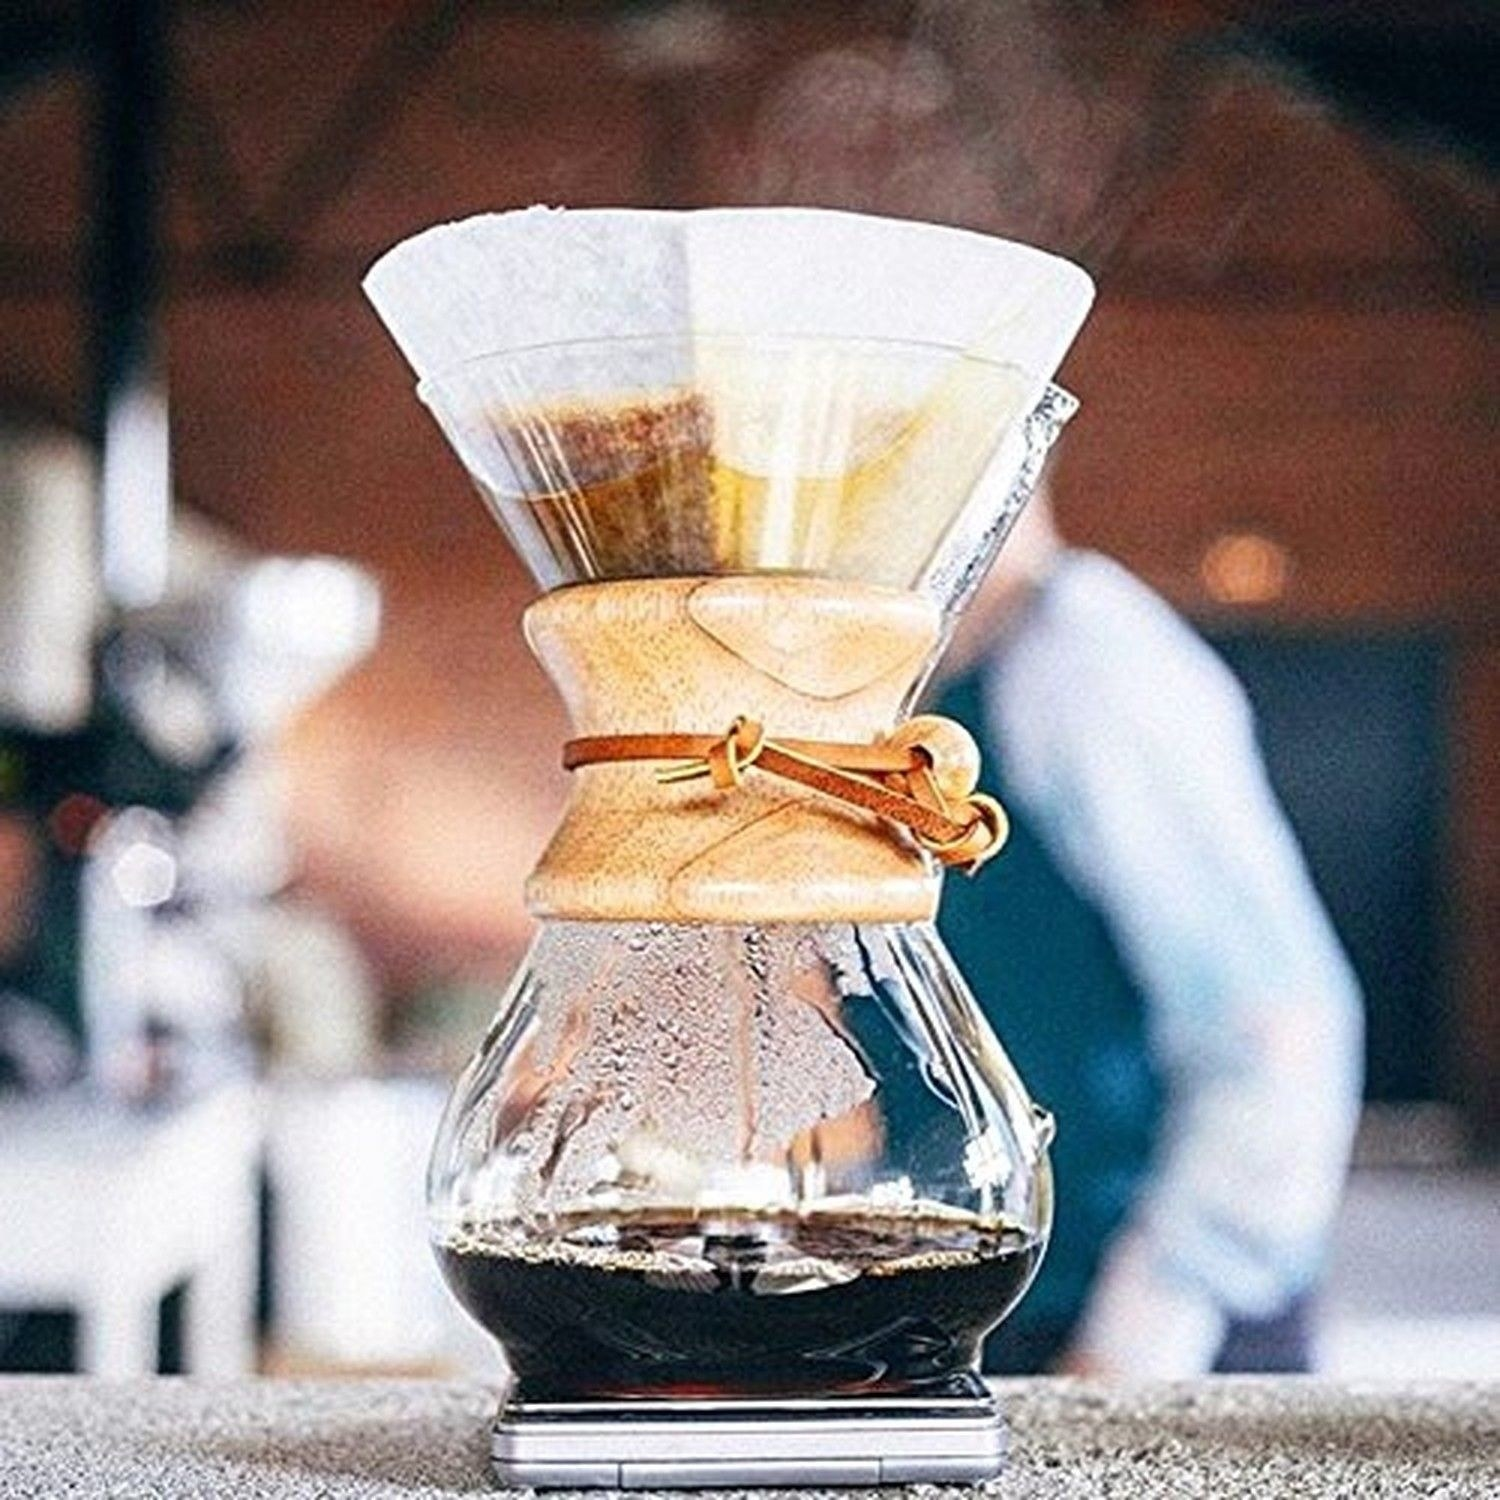 glass chemex shaped like an hour glass with coffee in the bottom vessel